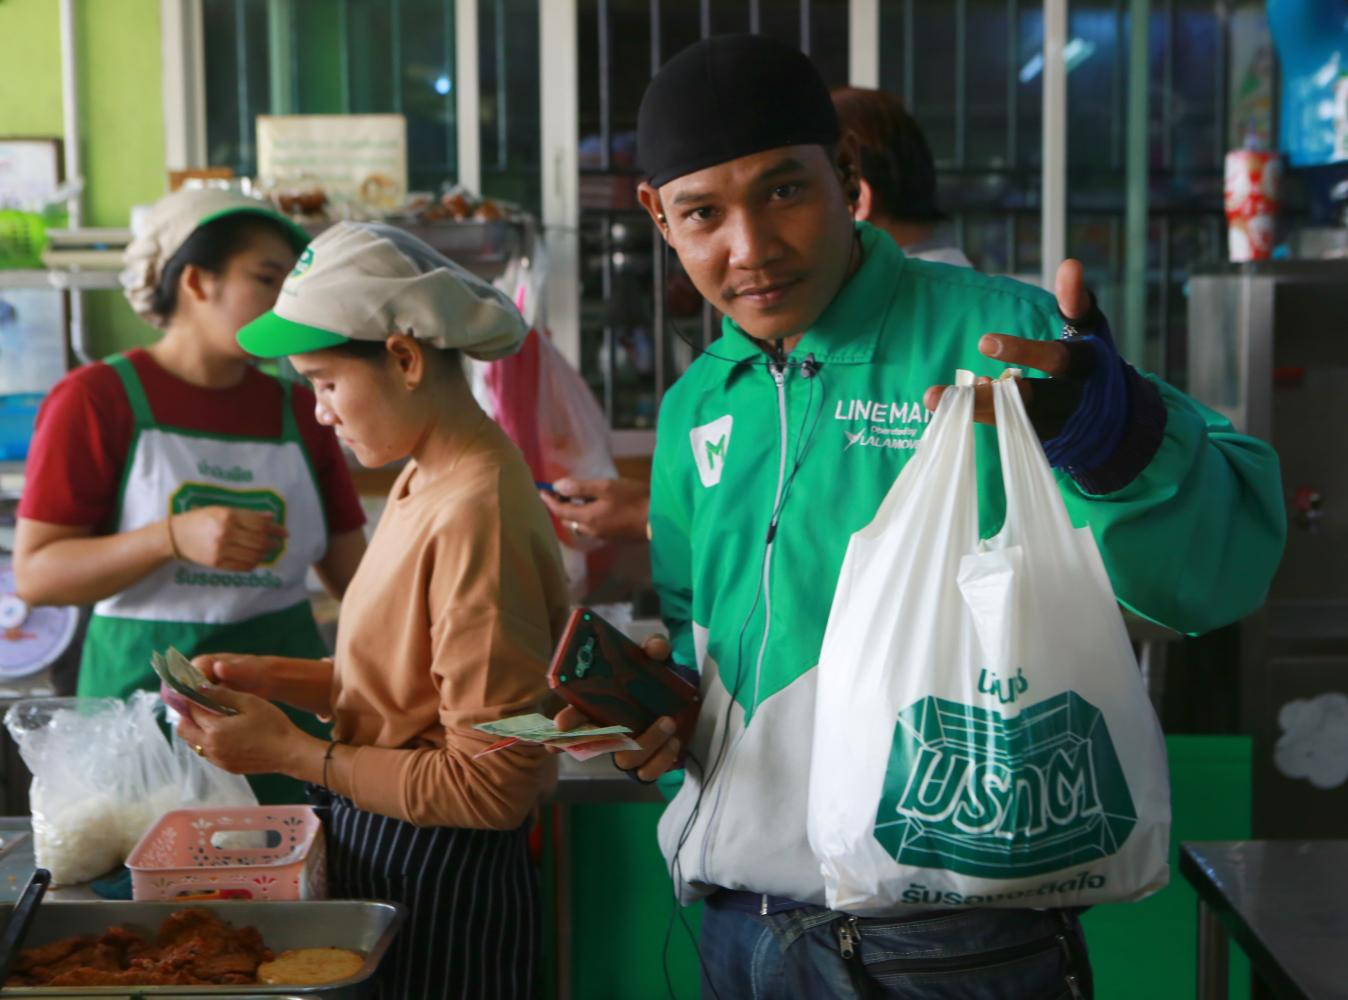 Single-use plastic bags are seeing a comeback as restaurants turn to home deliveries. Somchai Poomlard